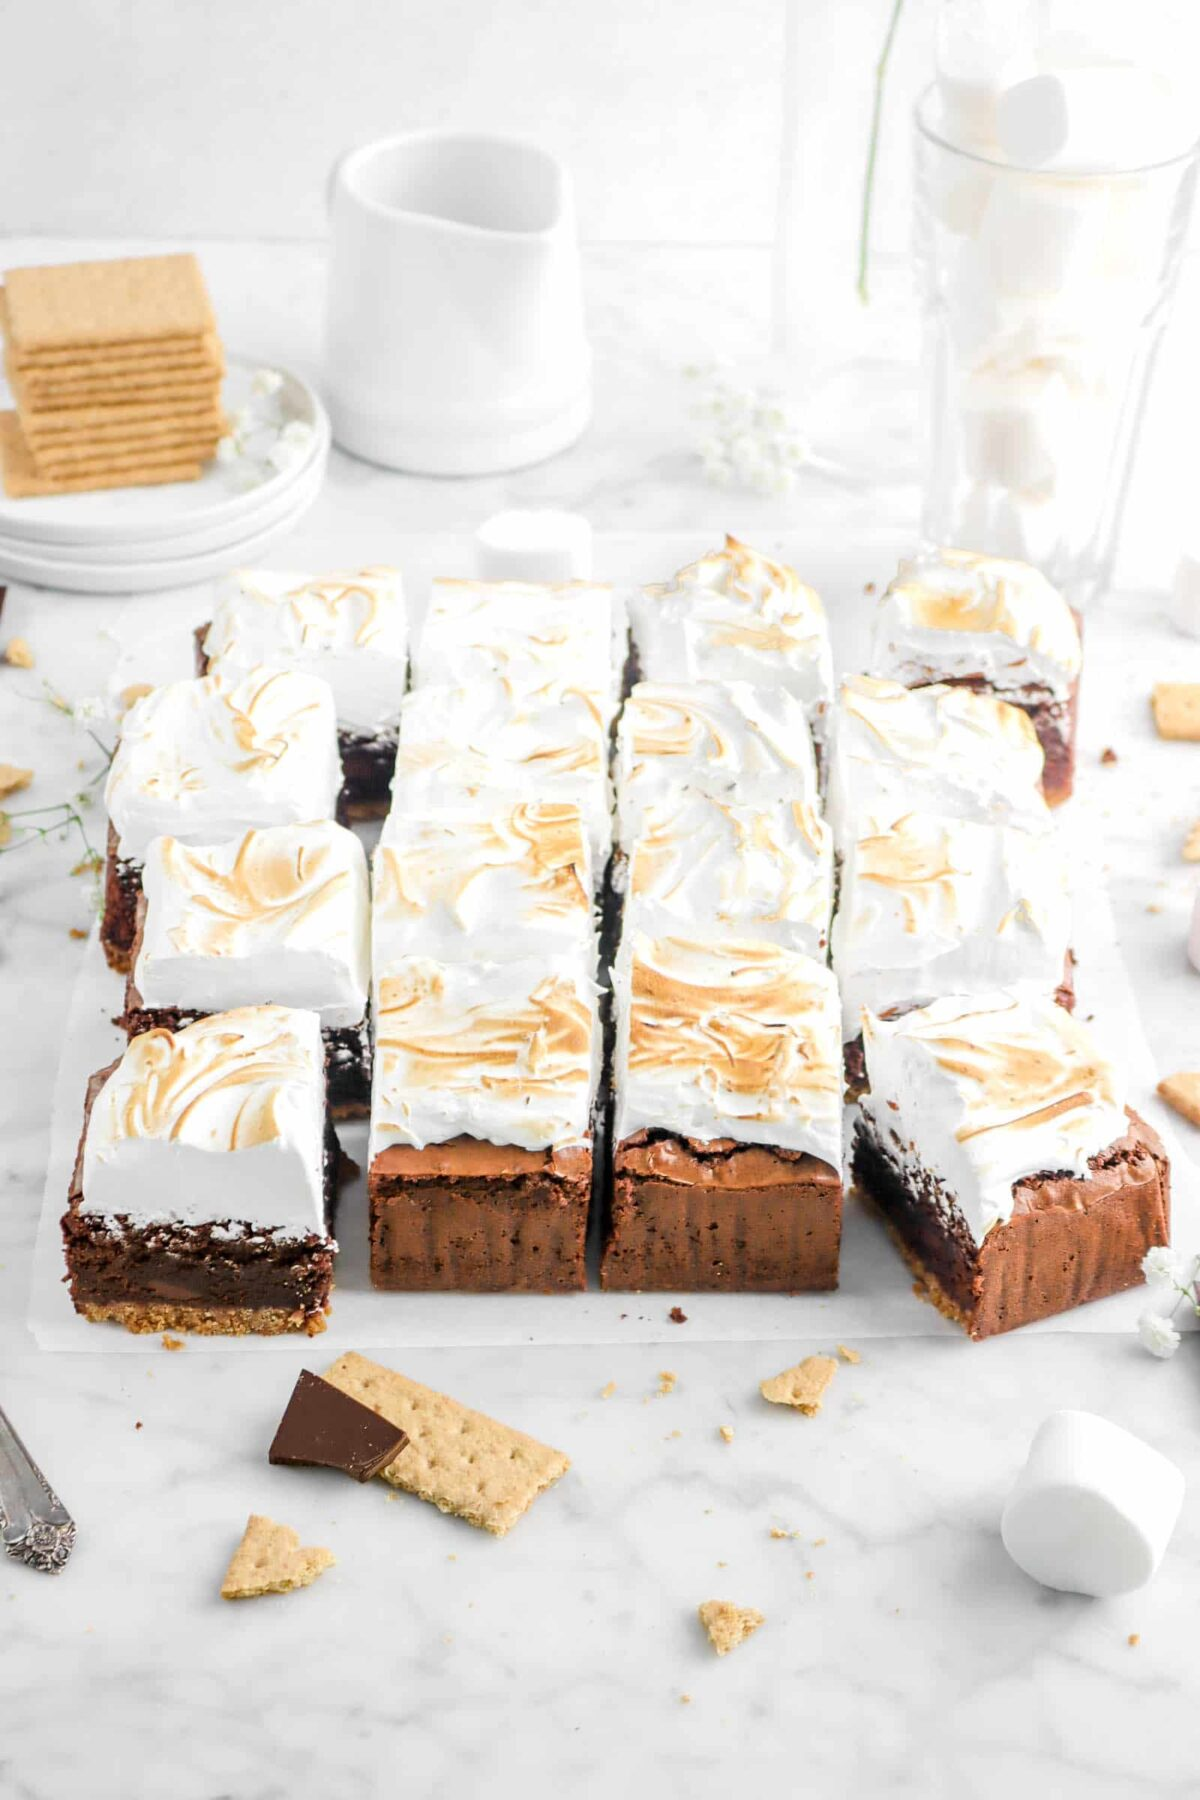 sixteen s'mores brownies on parchment paper with a glass of marshmallows, a stack of graham crackers, and flowers